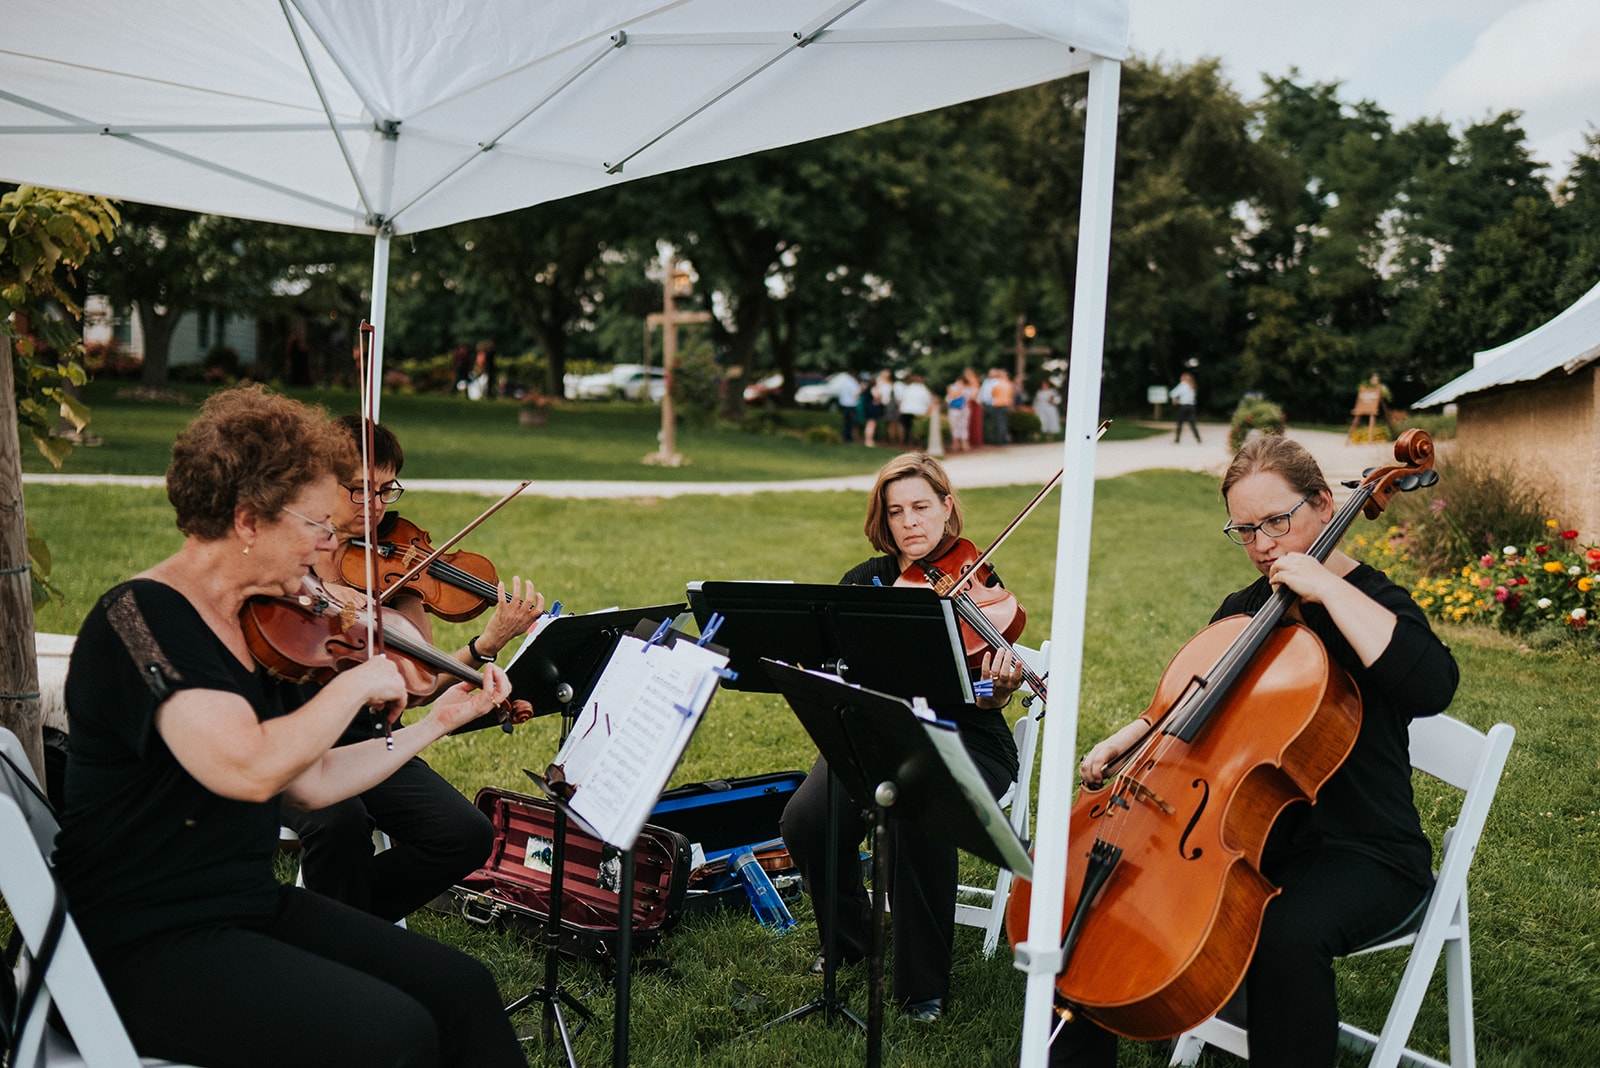 overthevineswisconsinwedding_0494.jpg